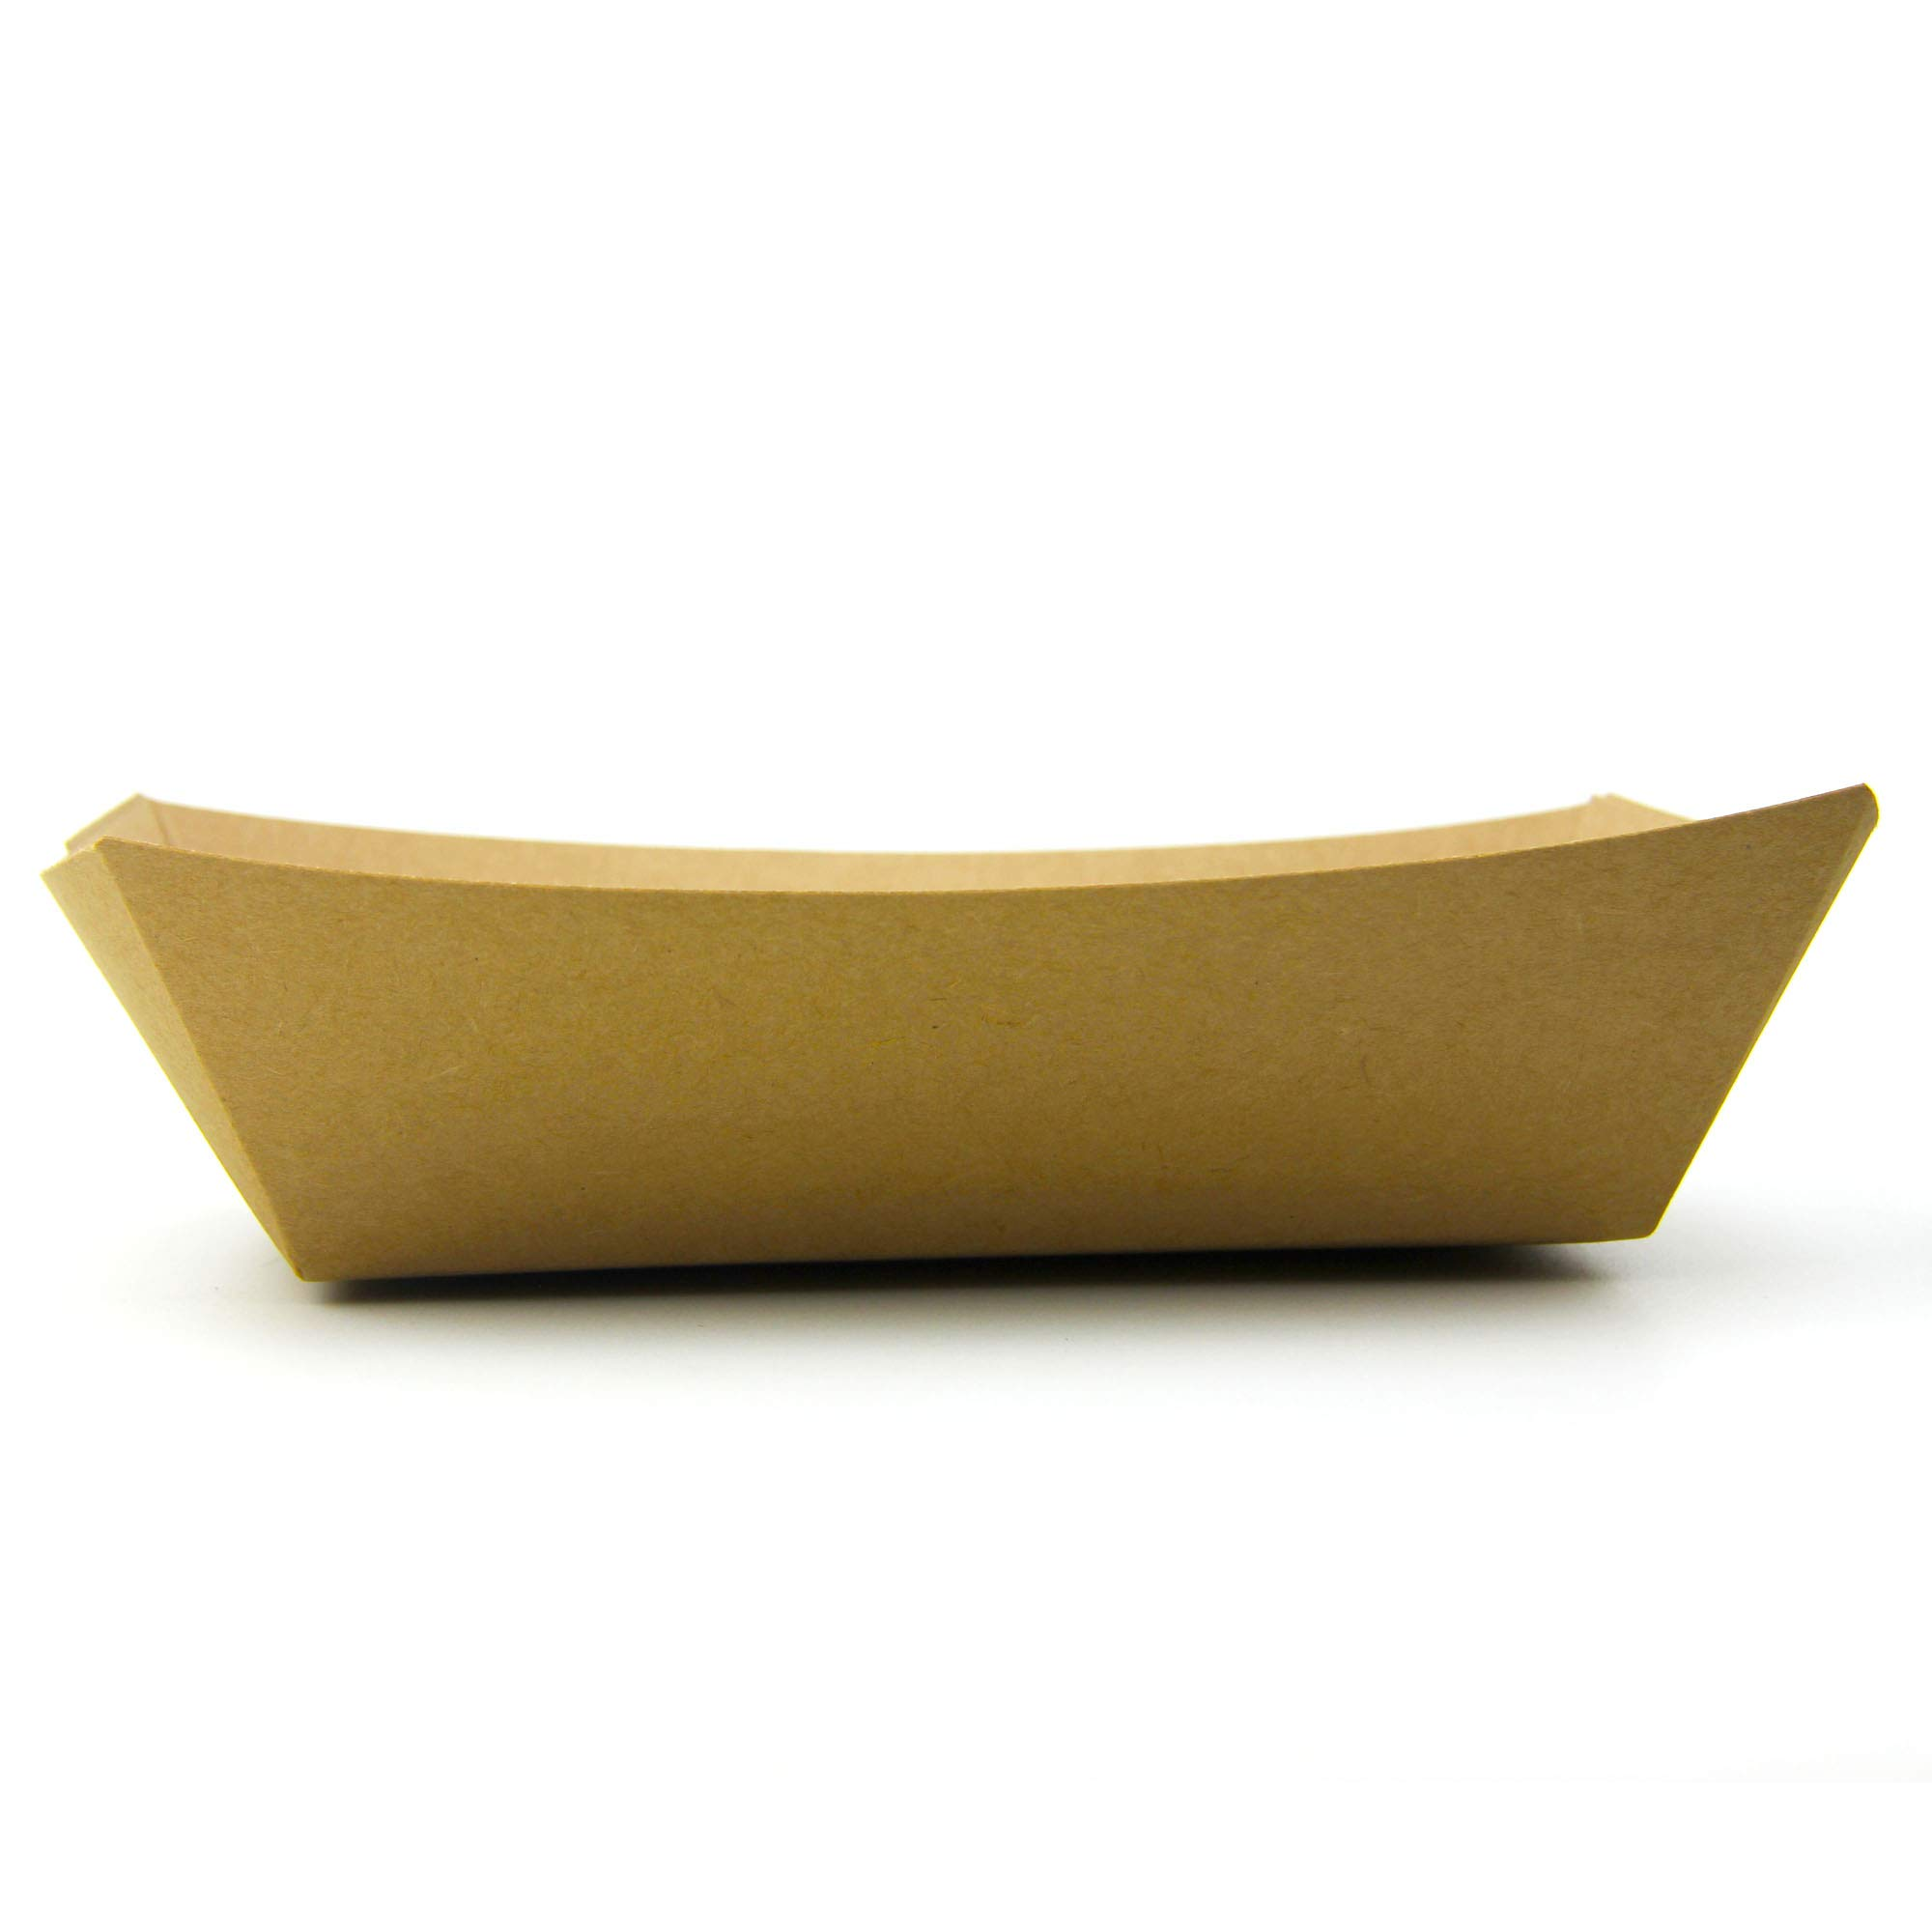 [250 Pack] 5 lb Heavy Duty Disposable Kraft Brown Paper Food Trays Grease Resistant Fast Food Paperboard Boat Basket for Parties Fairs Picnics Carnivals, Holds Tacos Nachos Fries Hot Corn Dogs by Fit Meal Prep (Image #6)